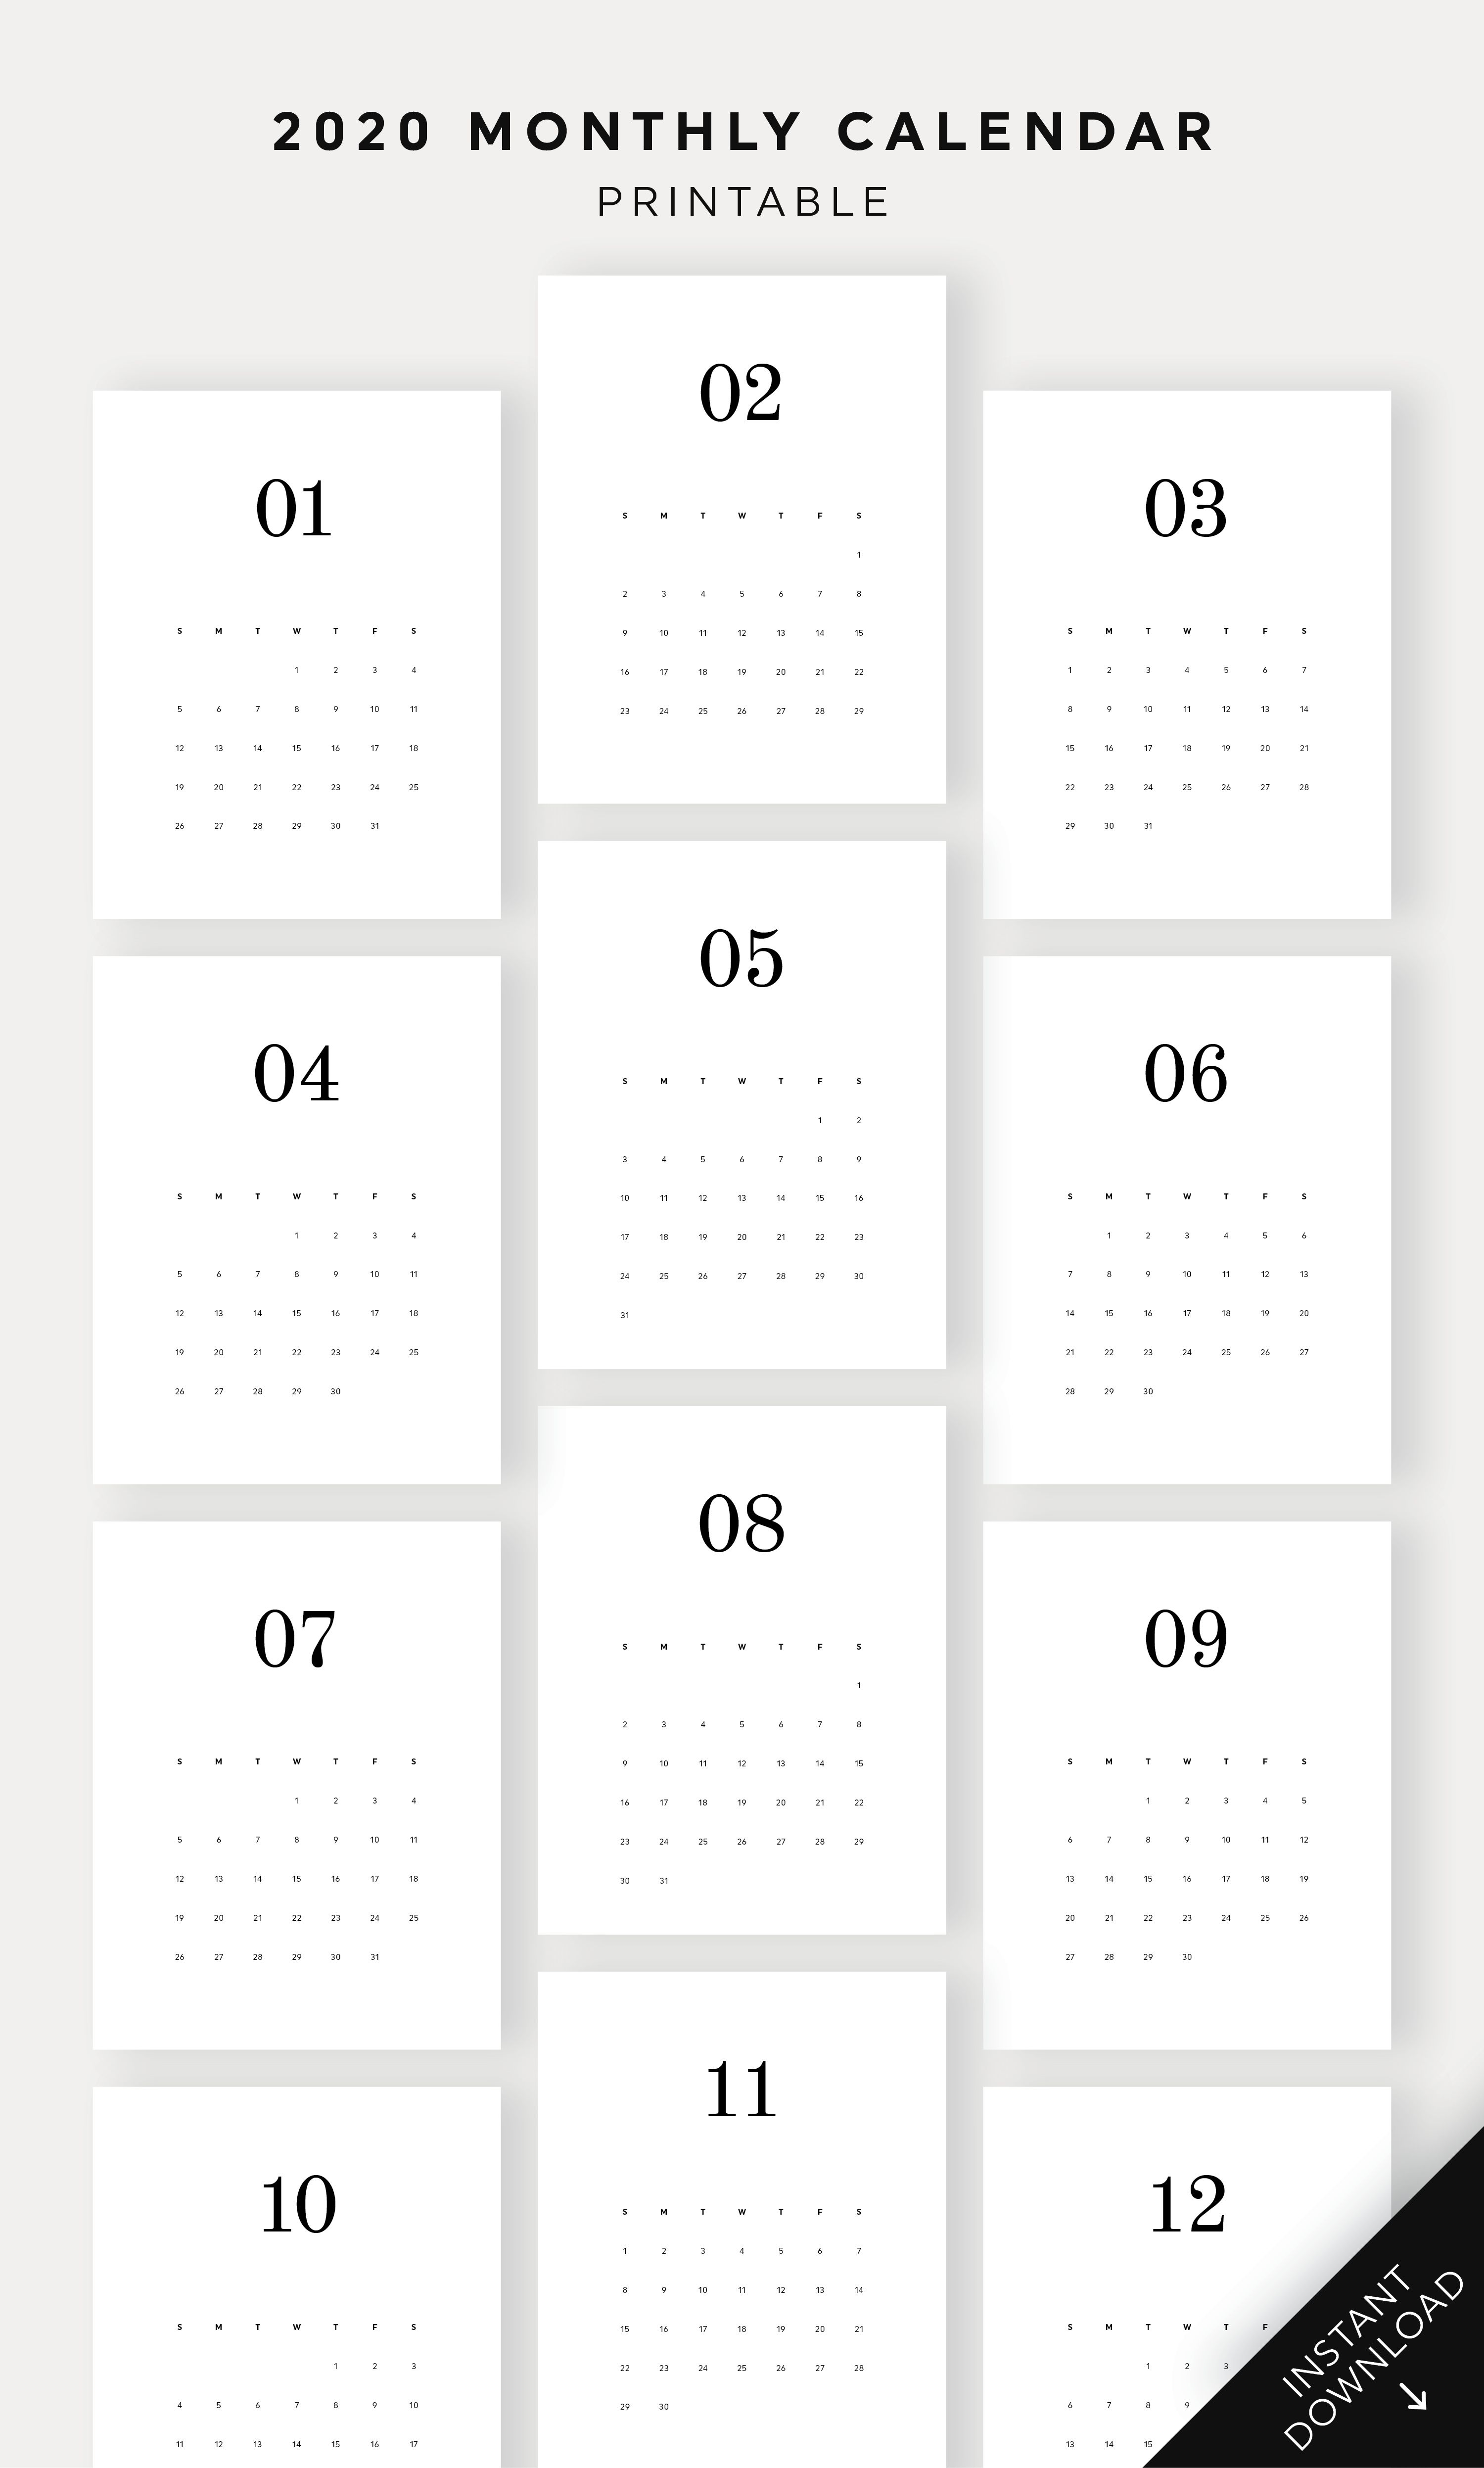 2020 Minimal Monthly Calendar Printable Monthly Planner Desk